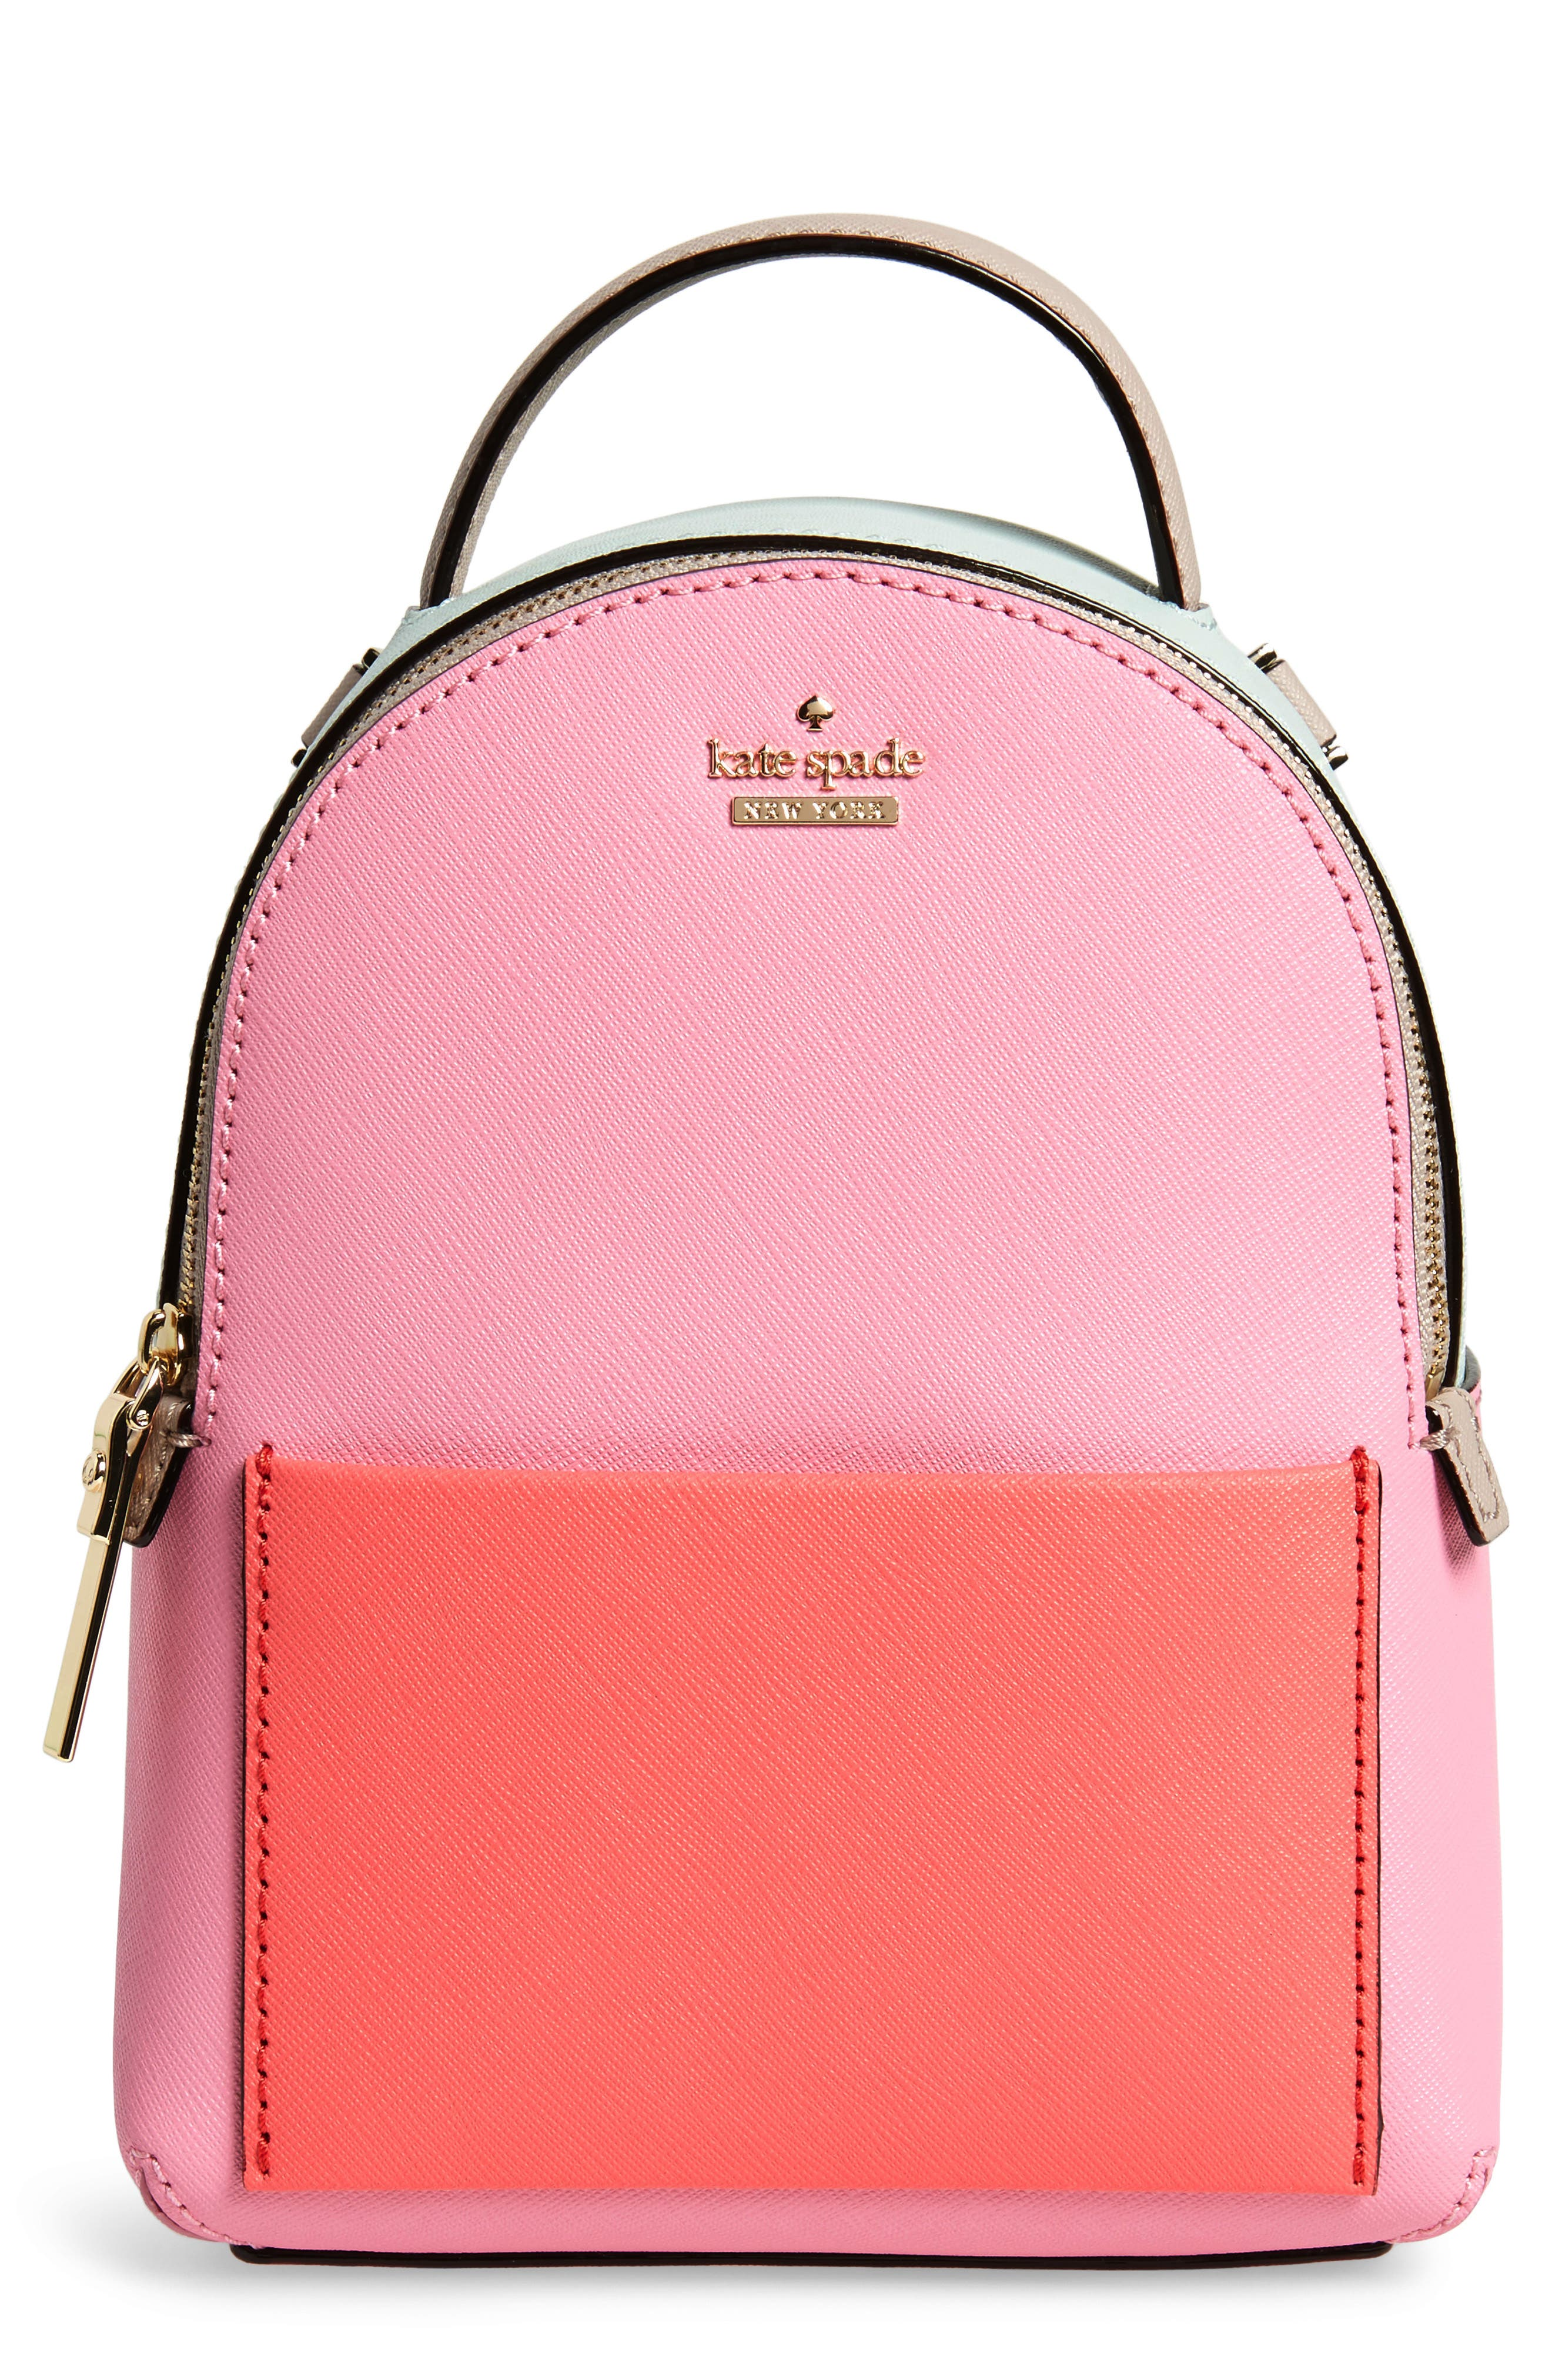 cameron street merry convertible leather backpack,                             Main thumbnail 1, color,                             Eraser Pink Multi